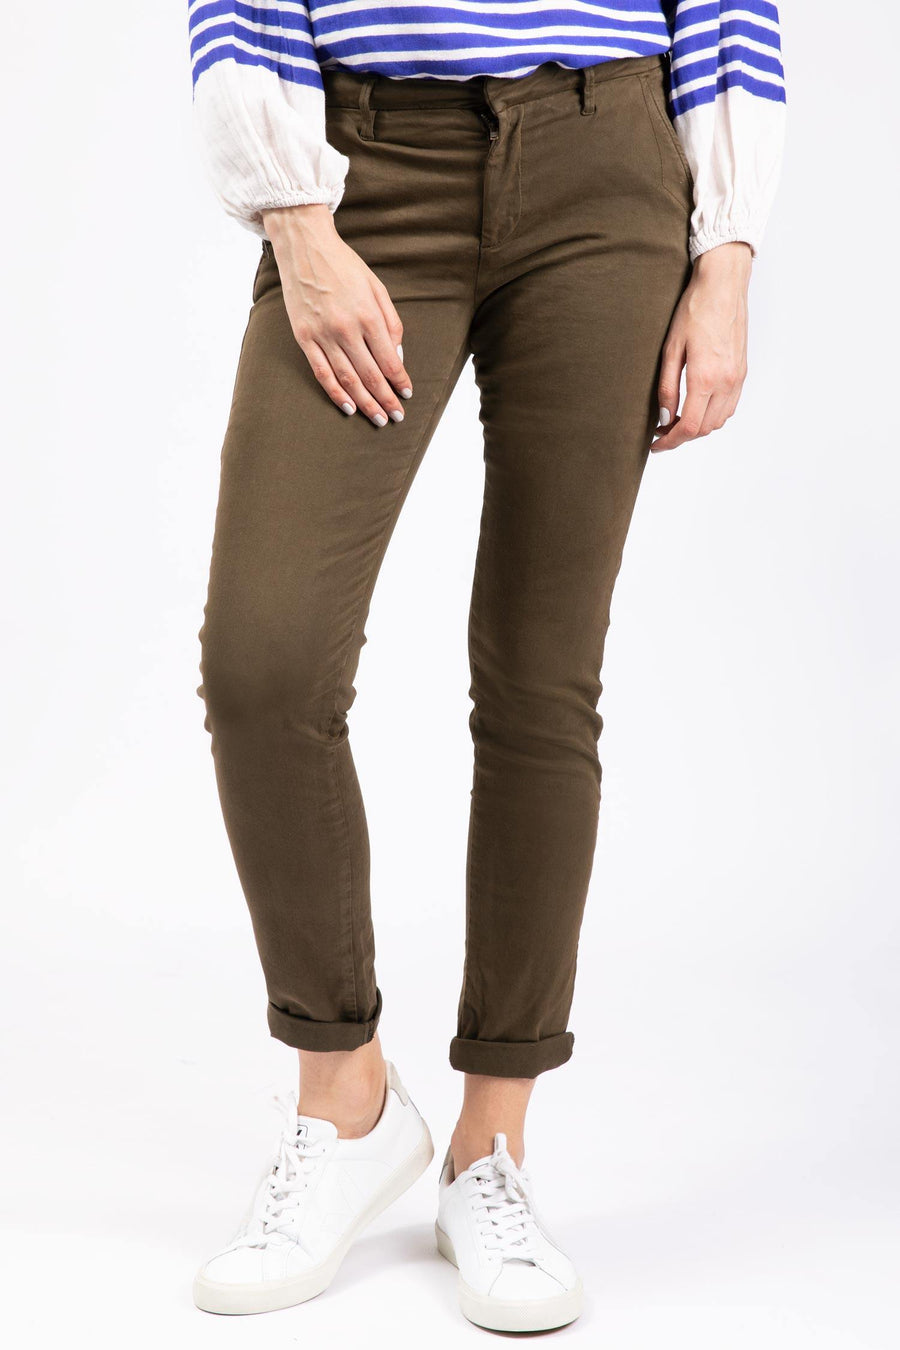 Straight Legged Chino Dark-Kaki